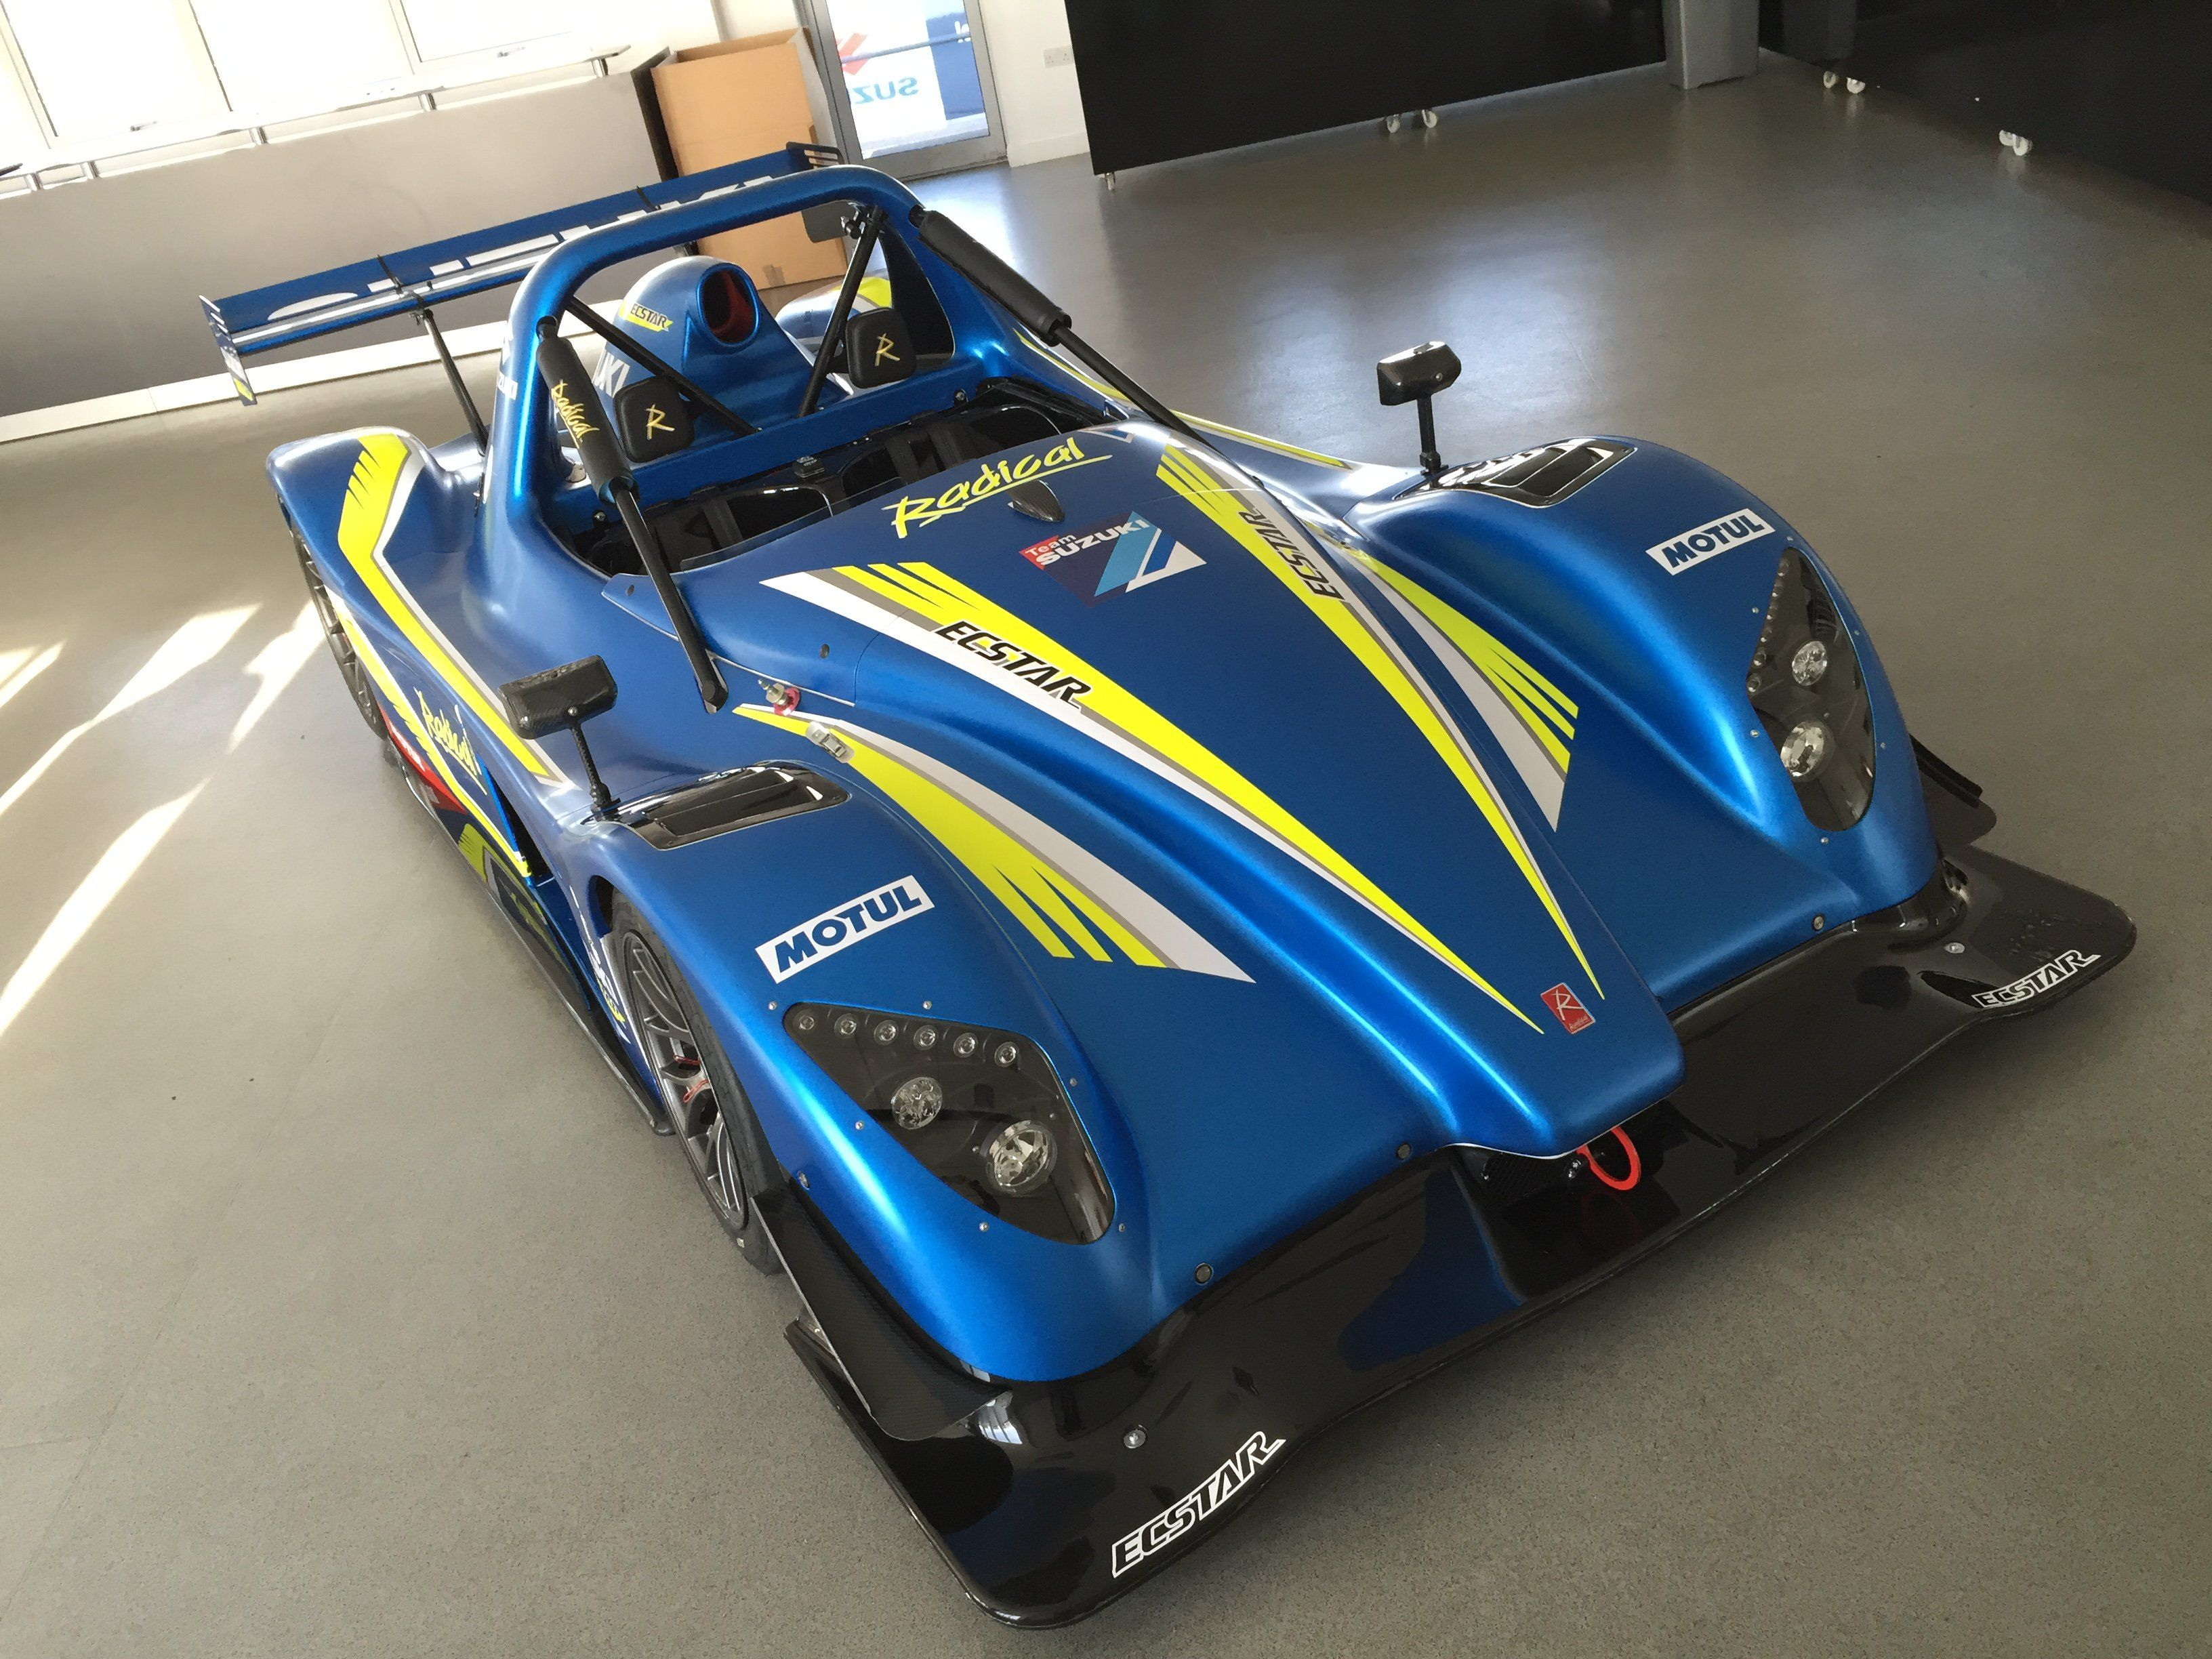 Superb Suzuki Hayabusa Powered Radical SR3